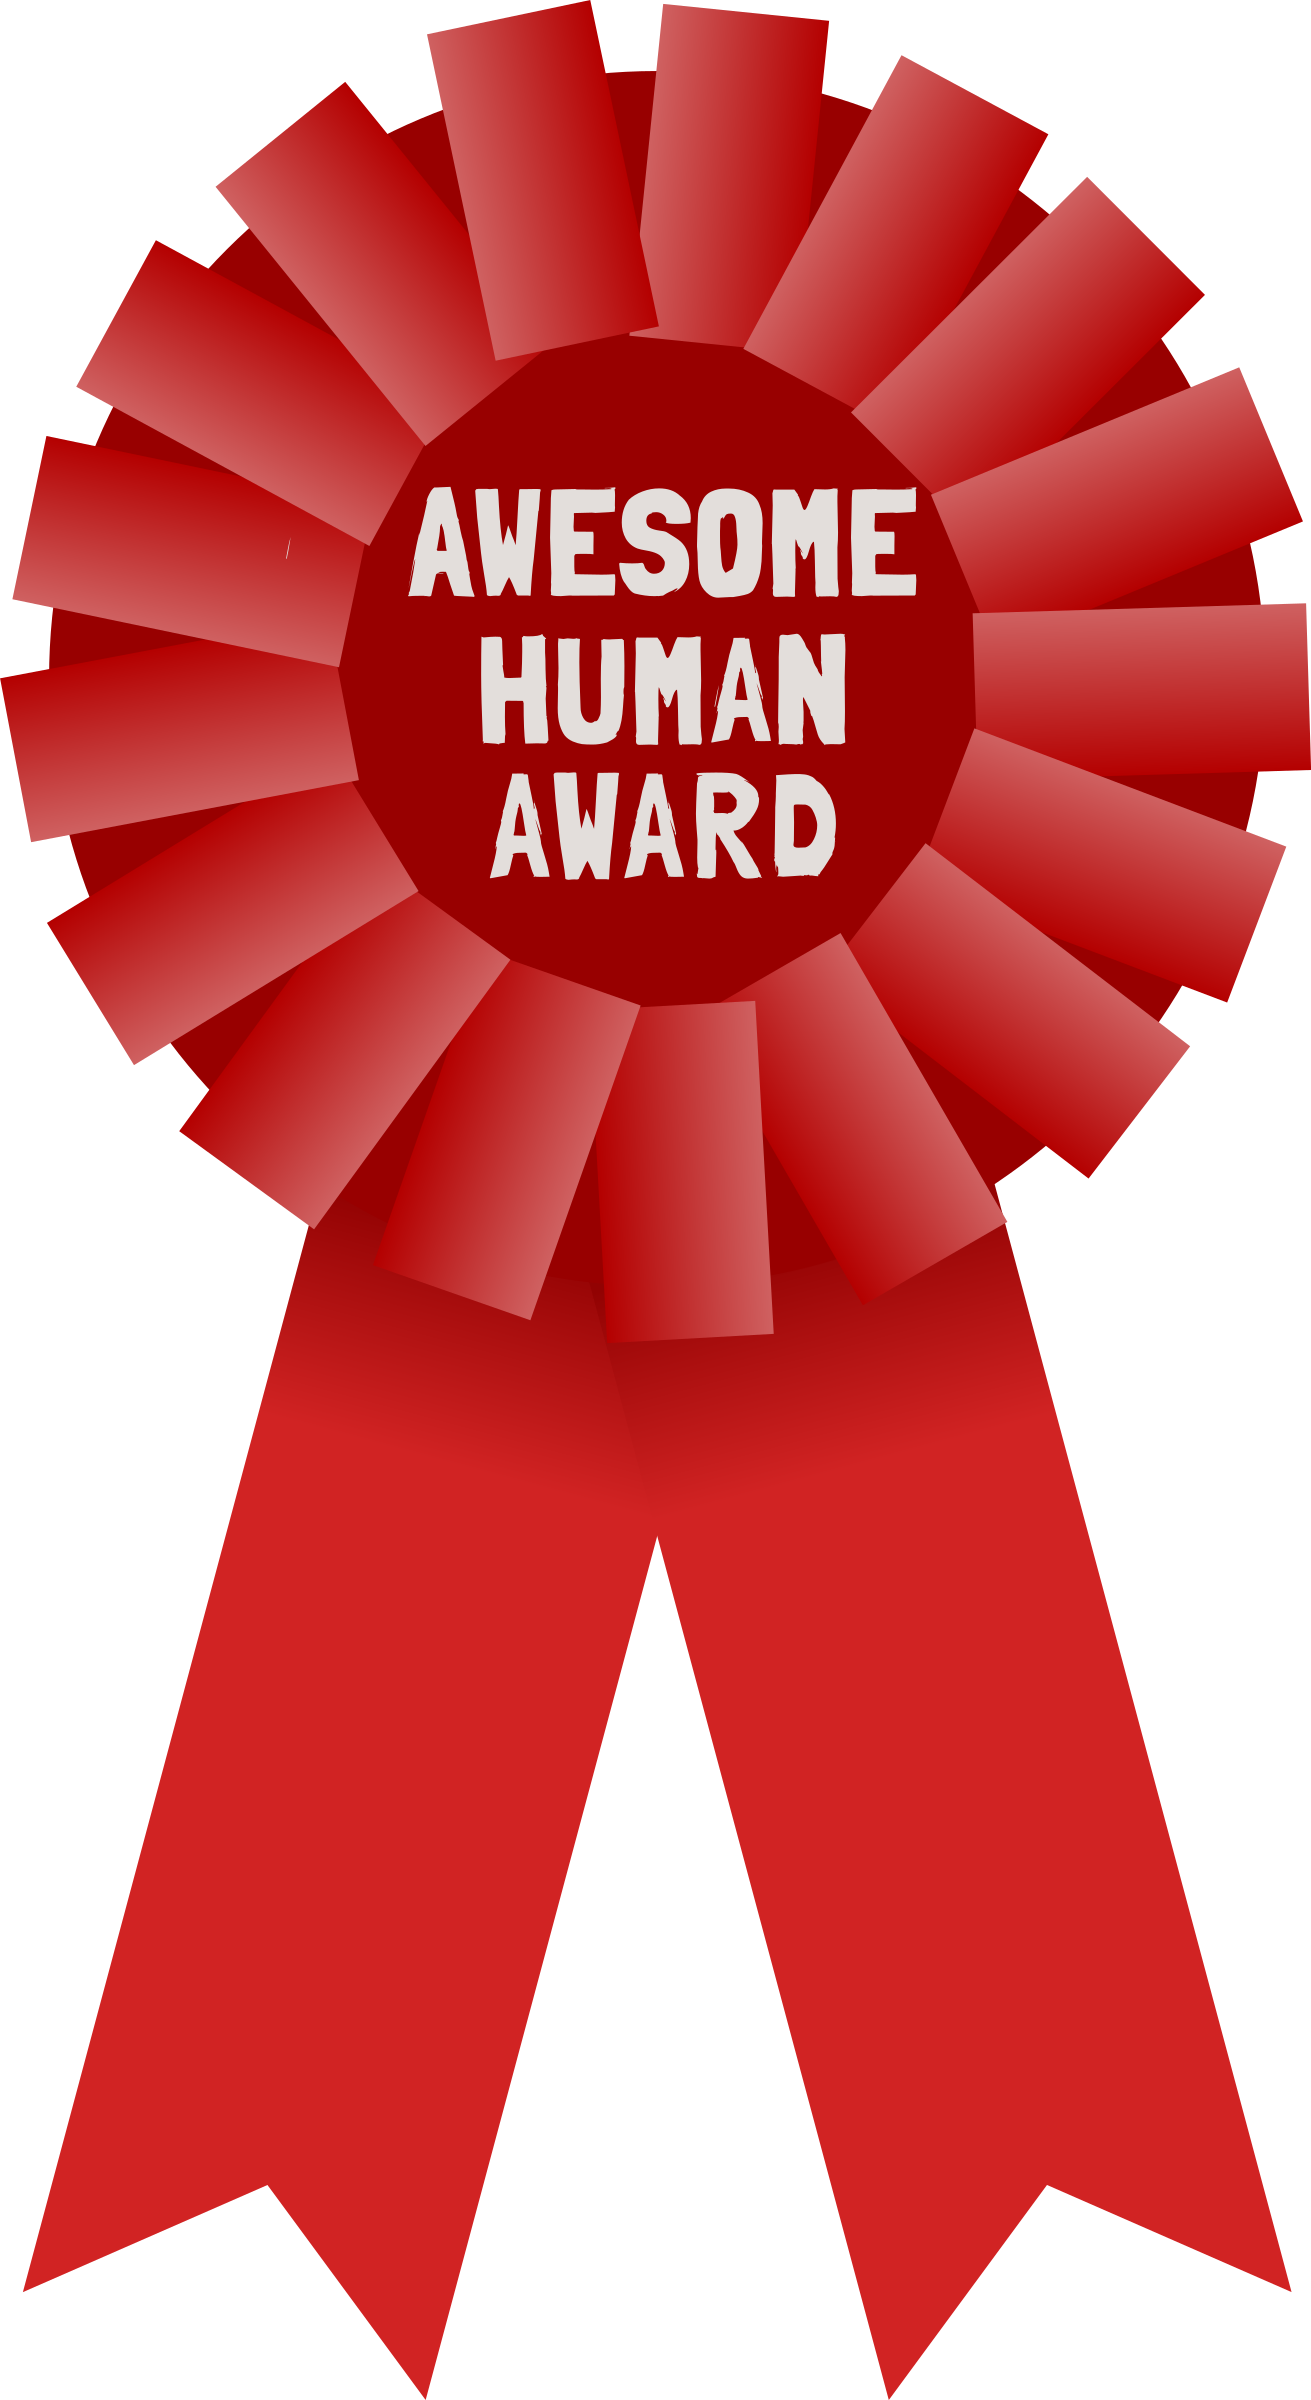 Awesome award big image. Red clipart human